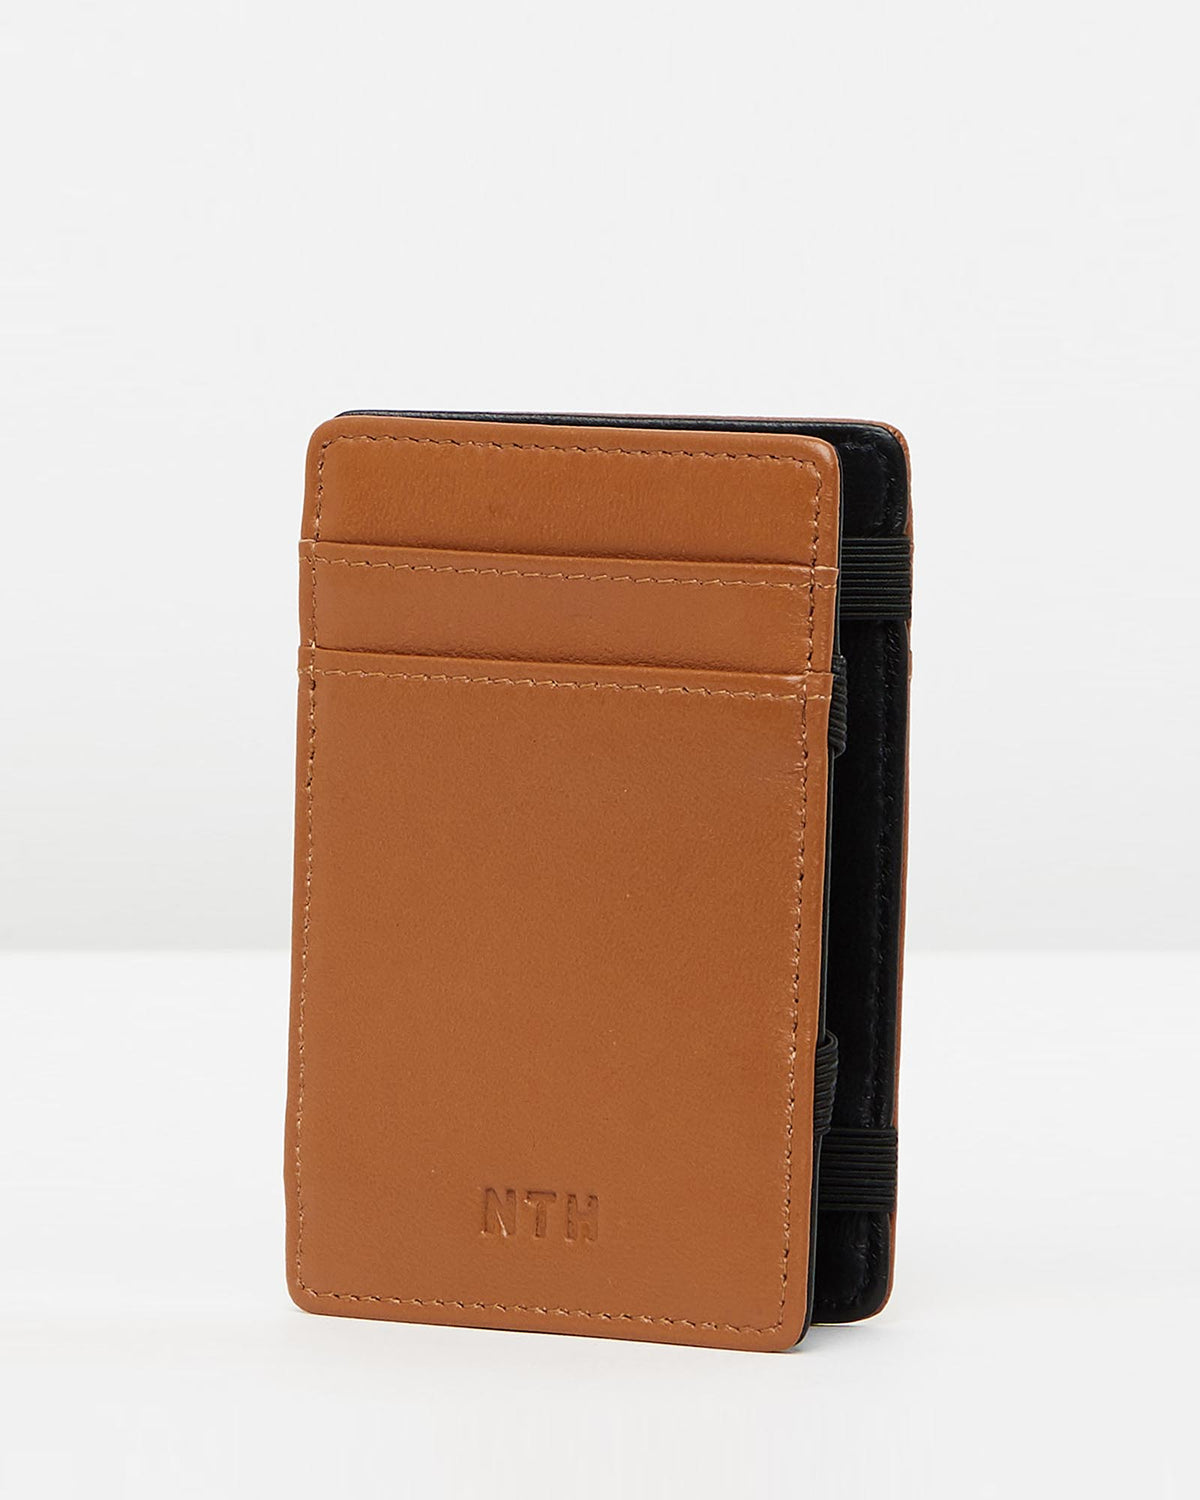 The Warrior Wallet Leather Tan